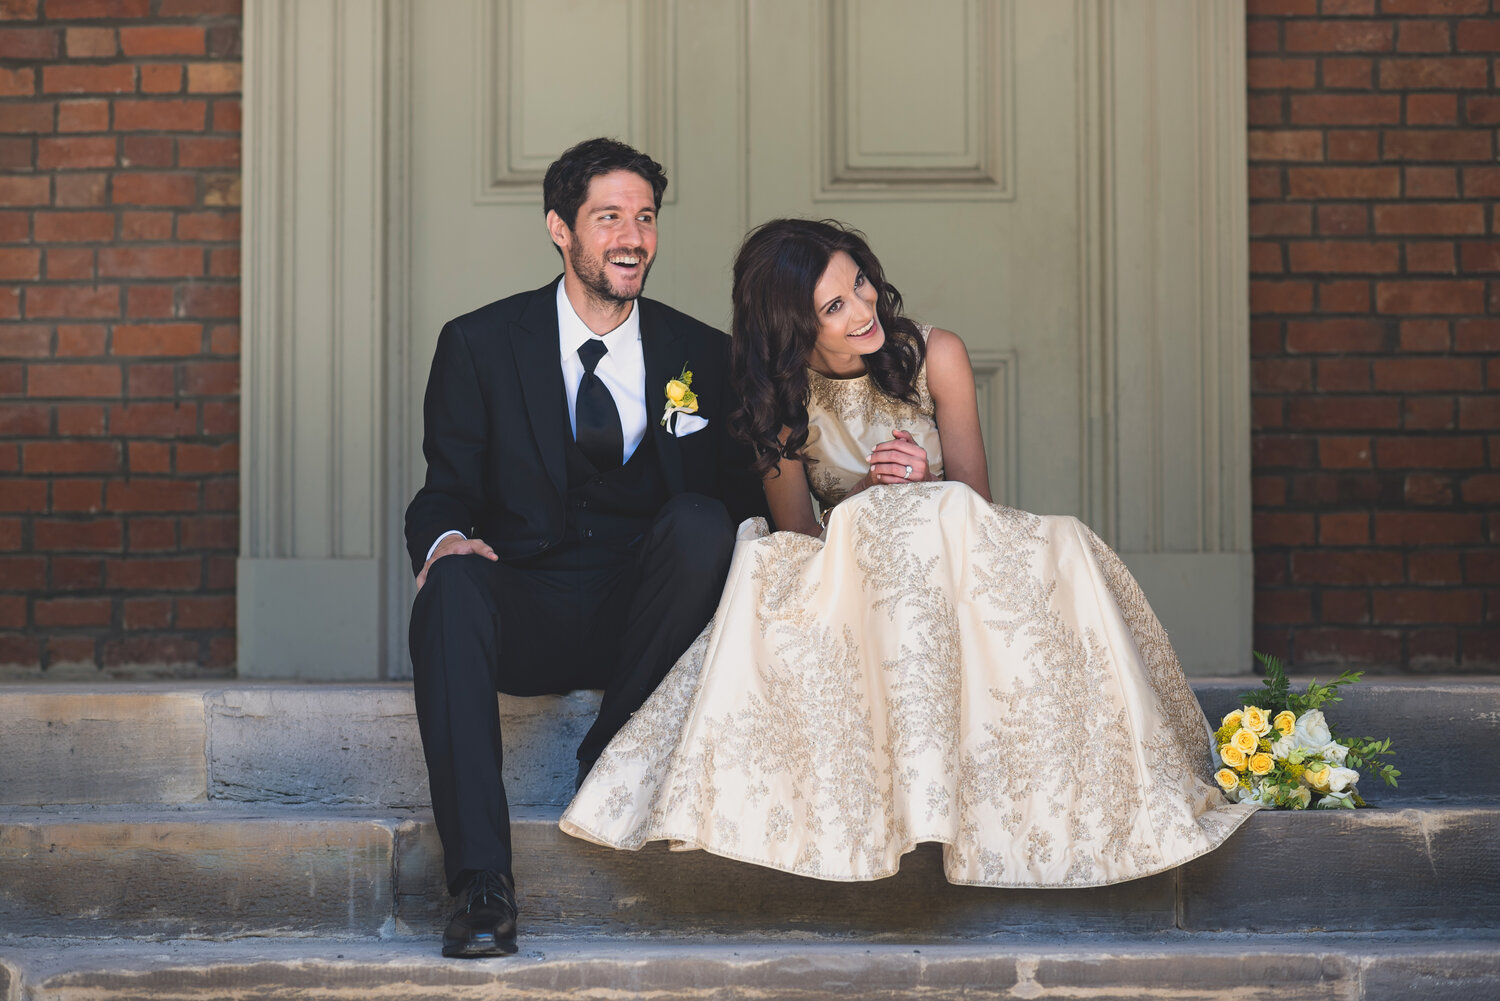 Meva and Justin - Wedding Photography Services by Devon Crowell